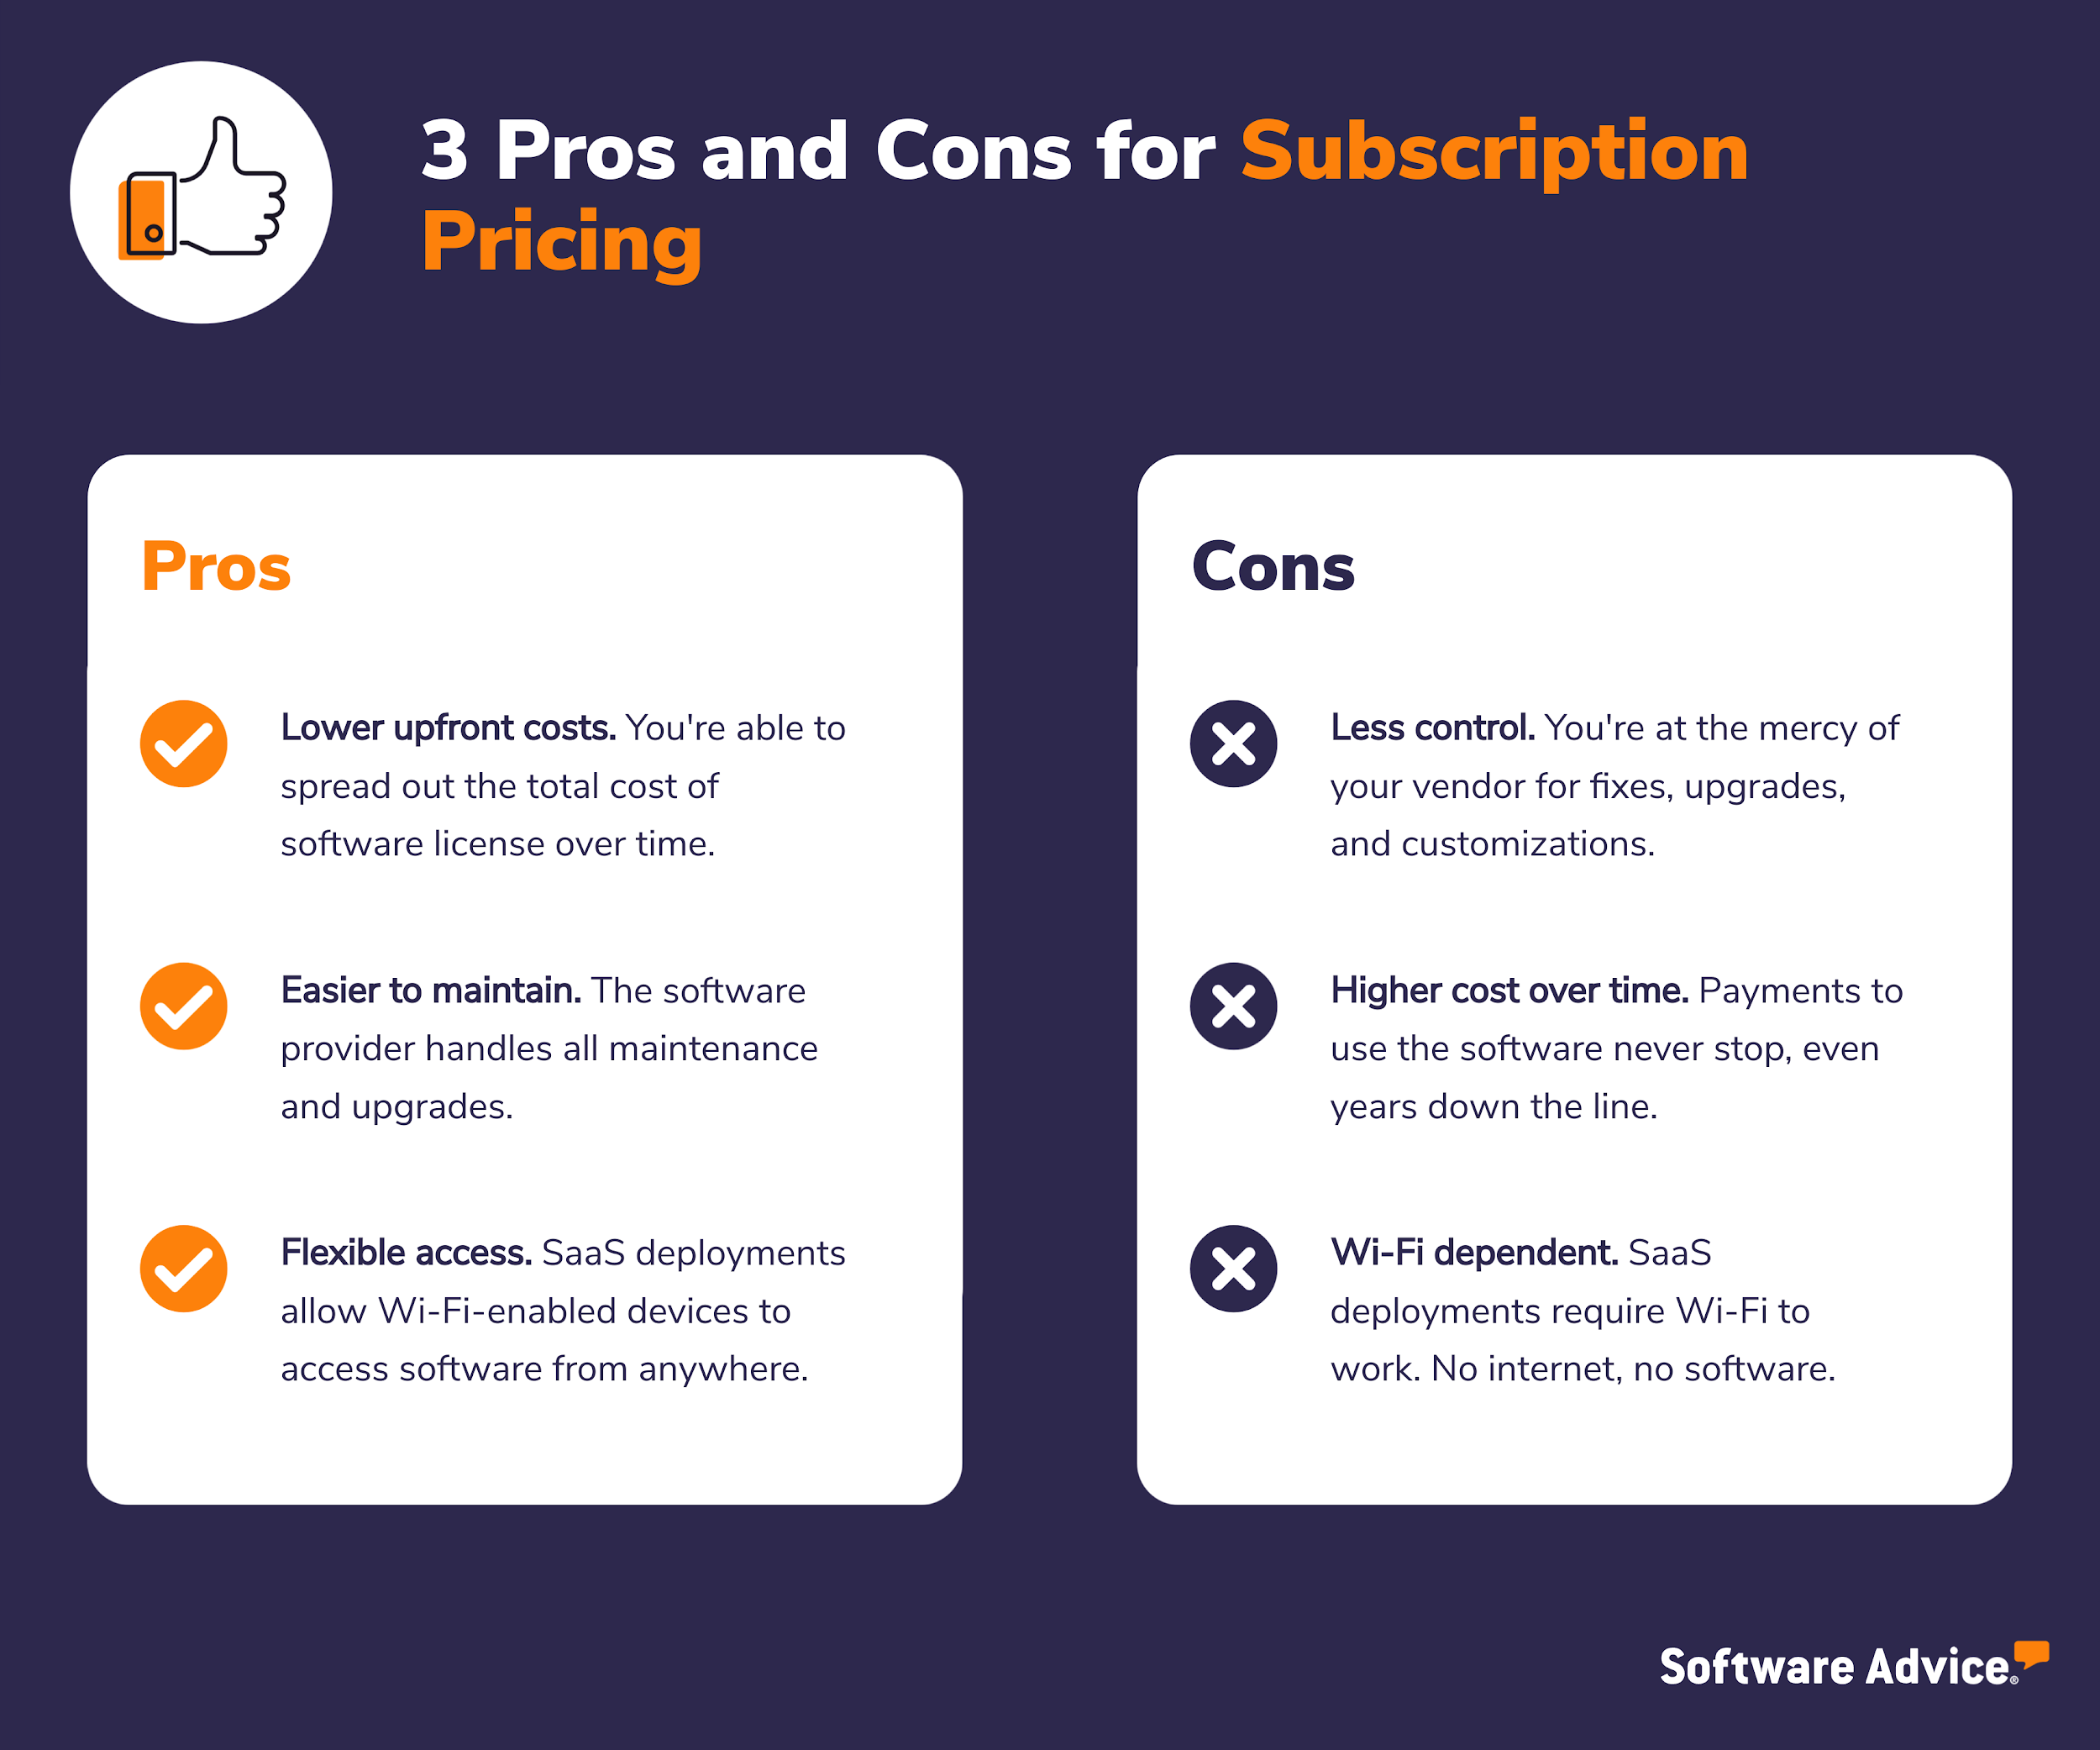 3 pros and cons of subscription-based pricing models